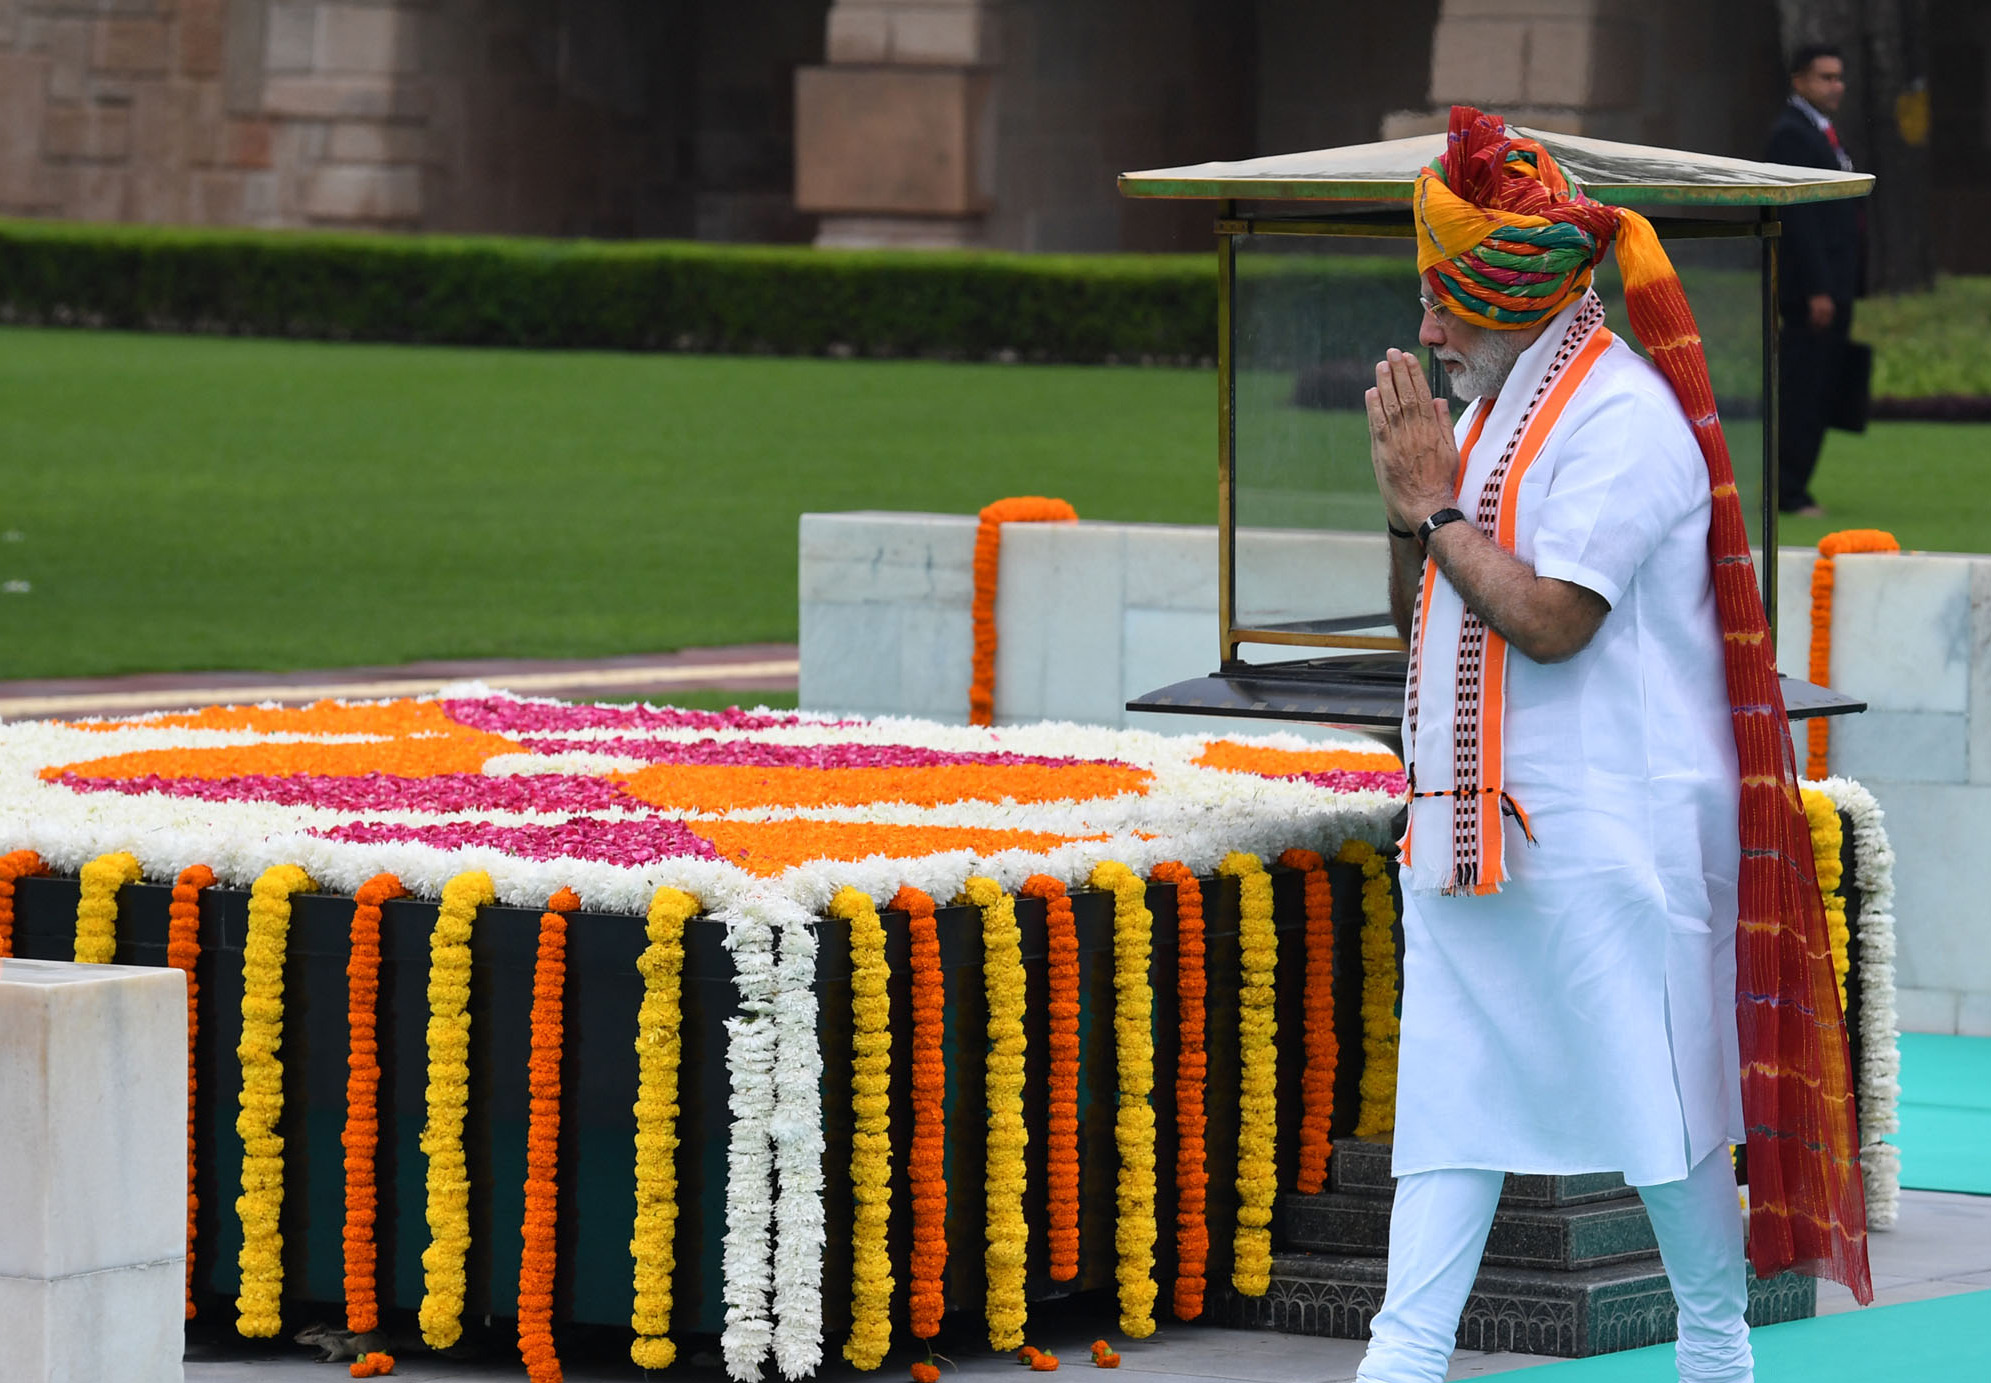 The Prime Minister  Shri Narendra Modi paying homage at the Samadhi of Mahatma Gandhi  at Rajghat  on the occasion of 73rd Independence Day  in Delhi on August 15  2019